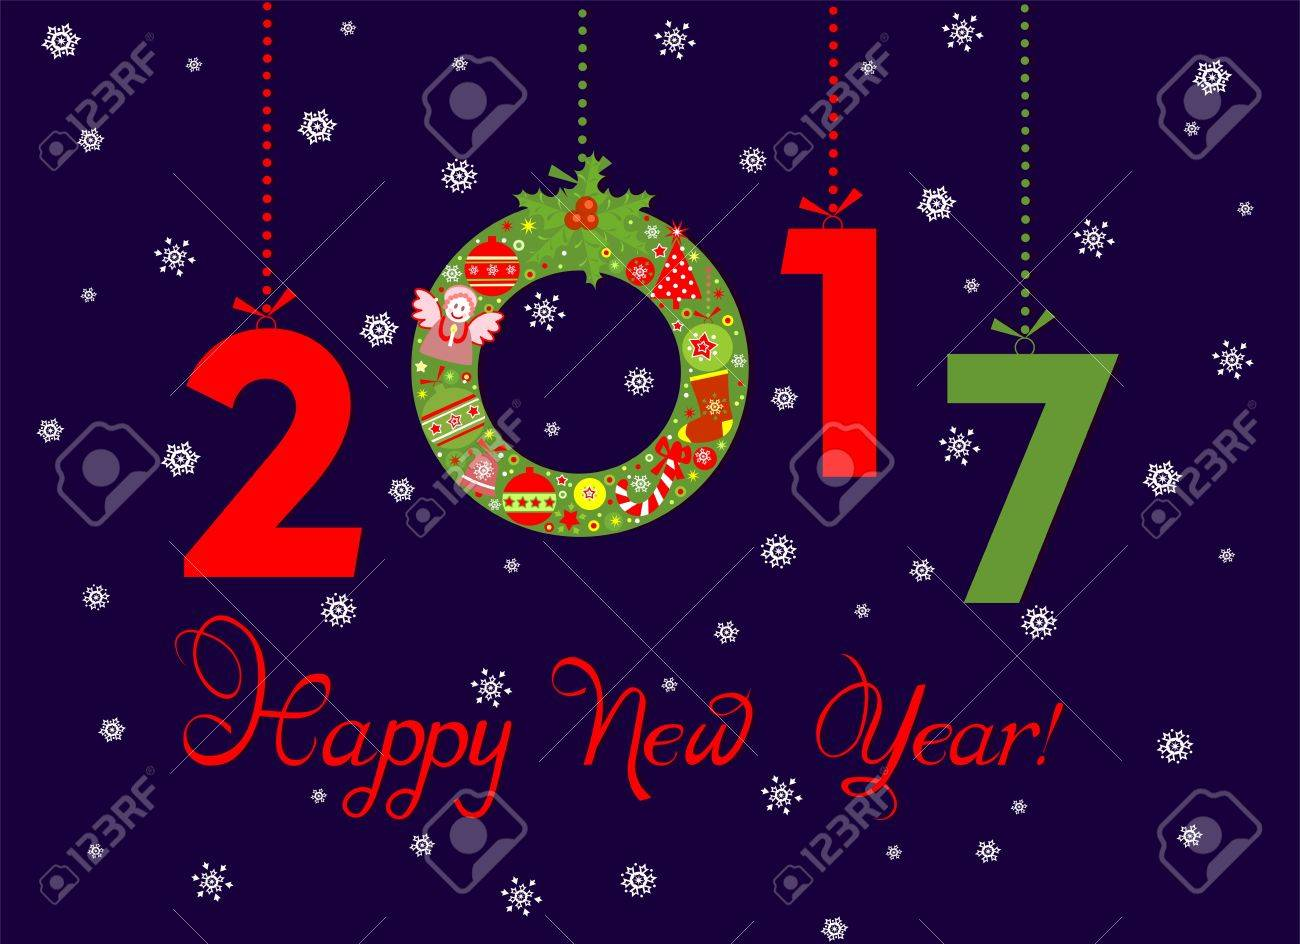 Paper Applique For New Year 2017 Greeting With Hanging Christmas